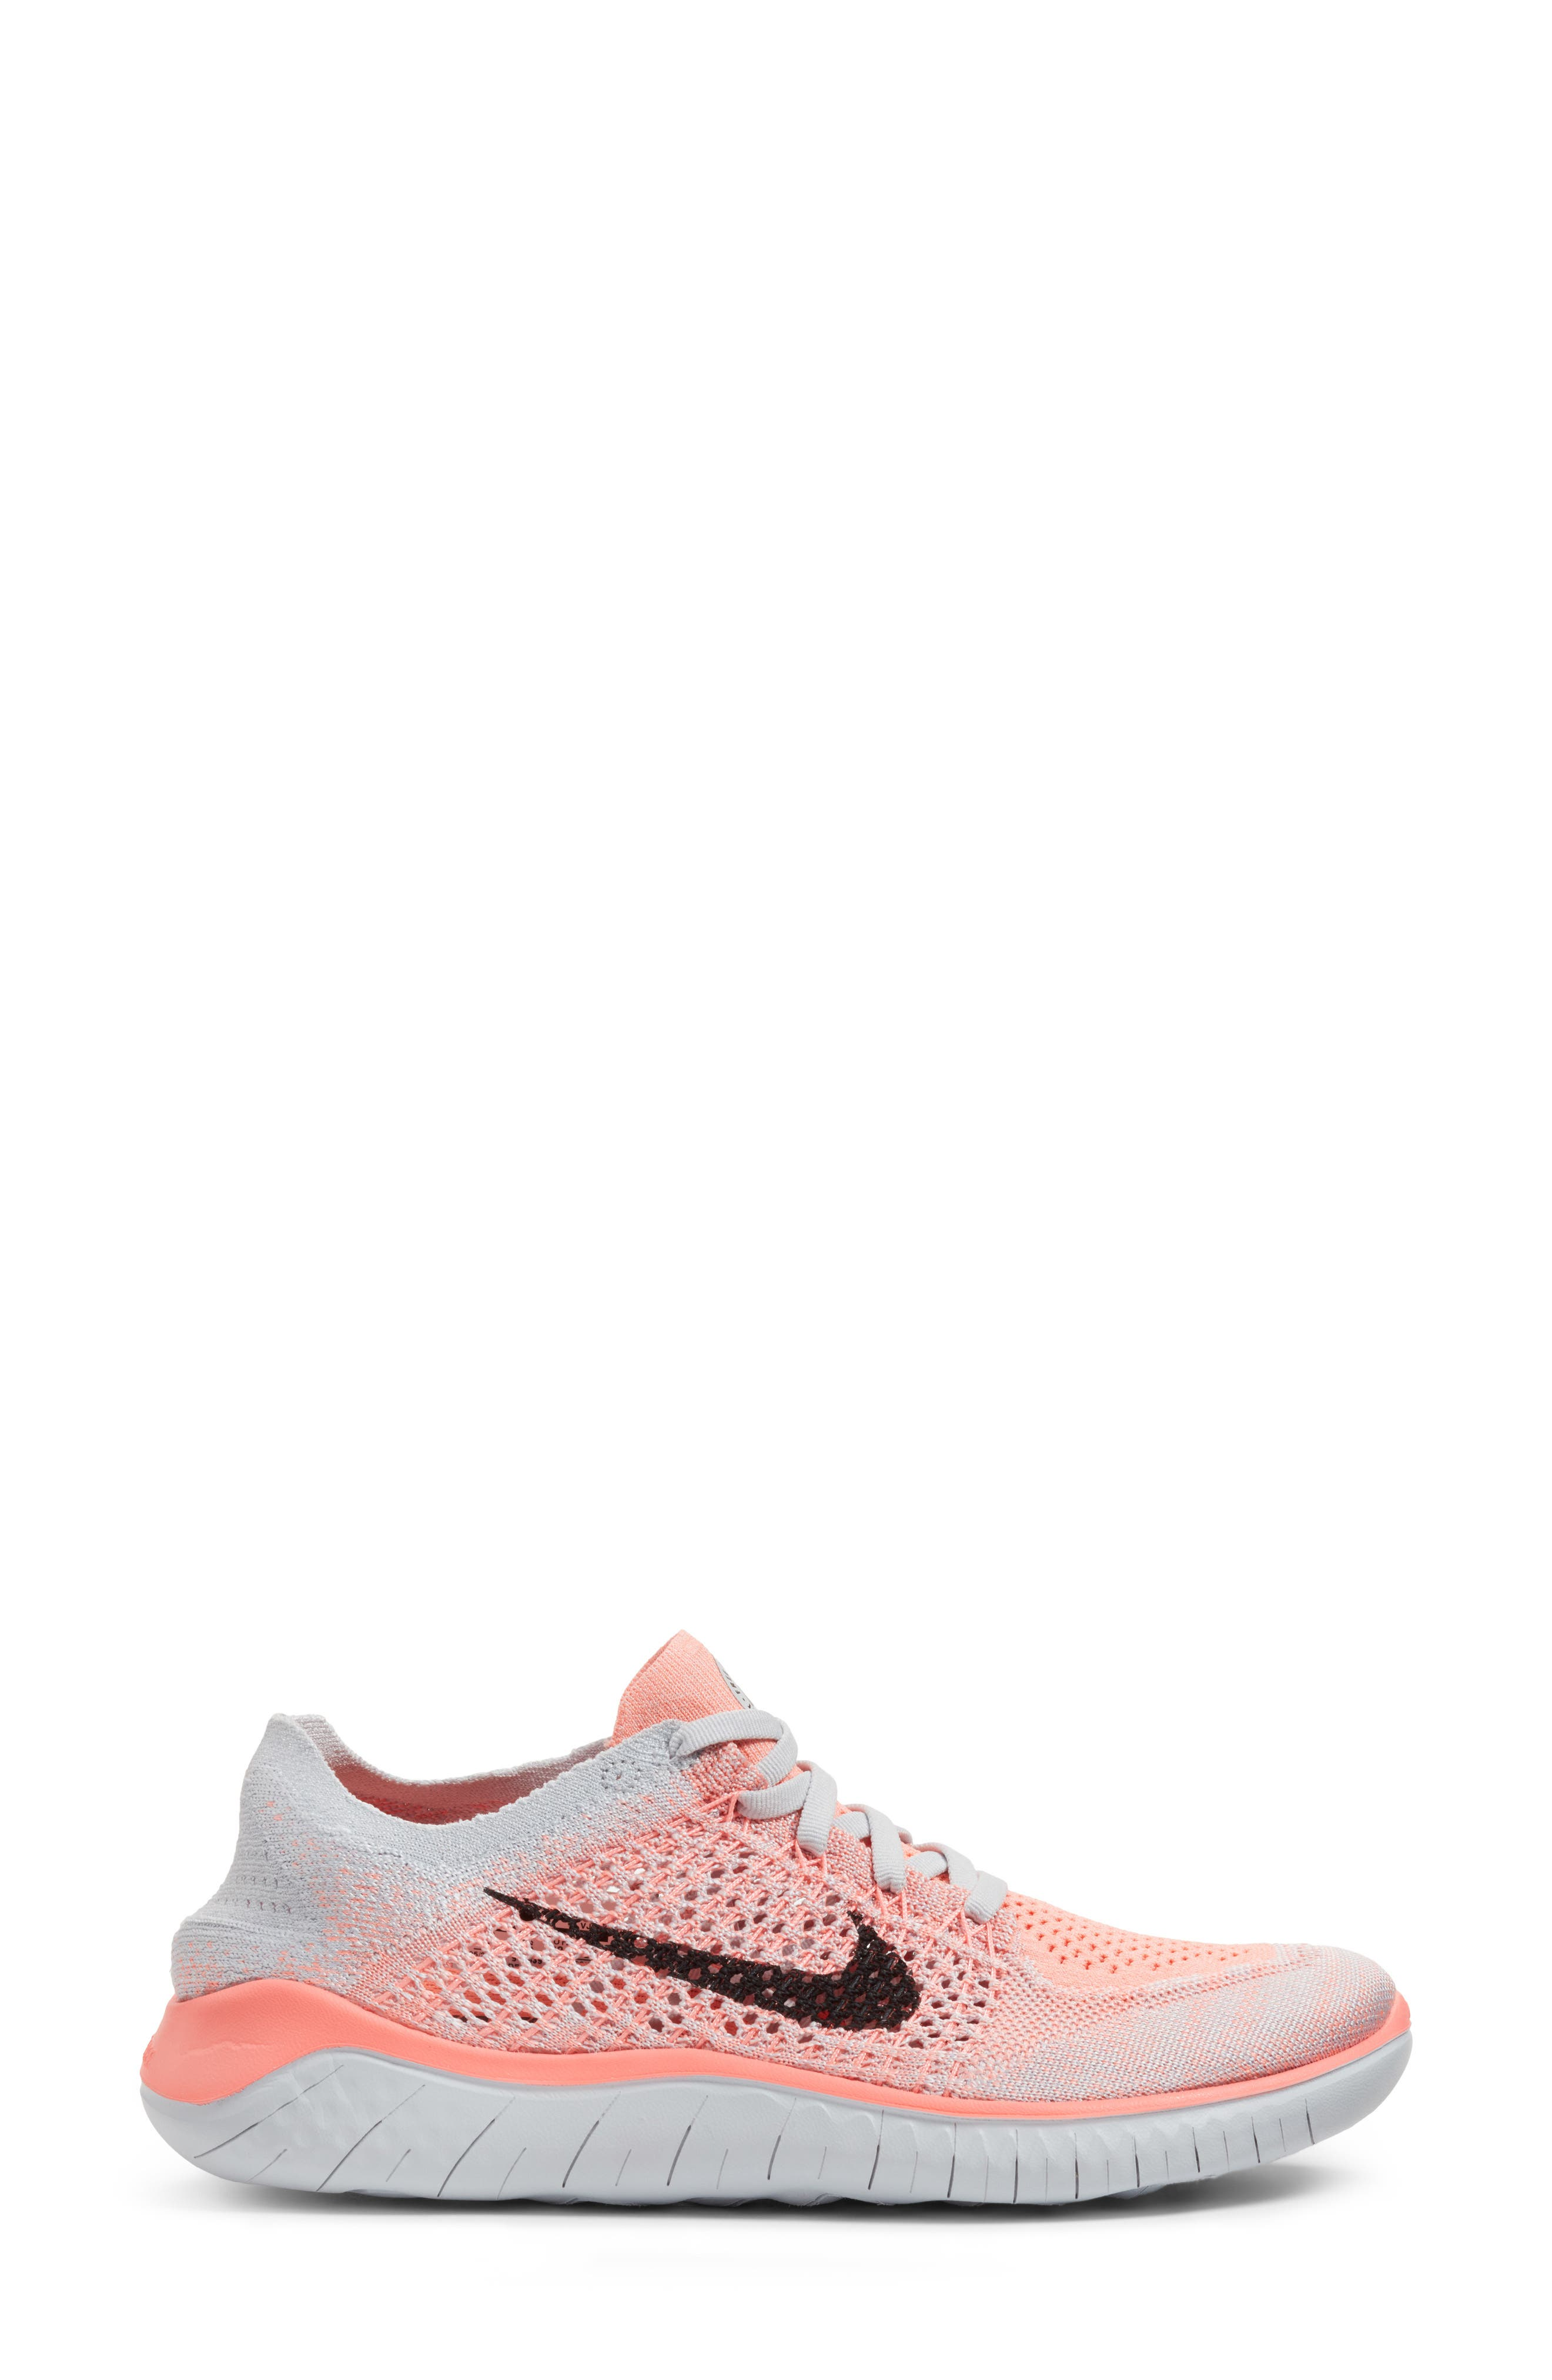 Free RN Flyknit 2018 Running Shoe,                             Alternate thumbnail 32, color,